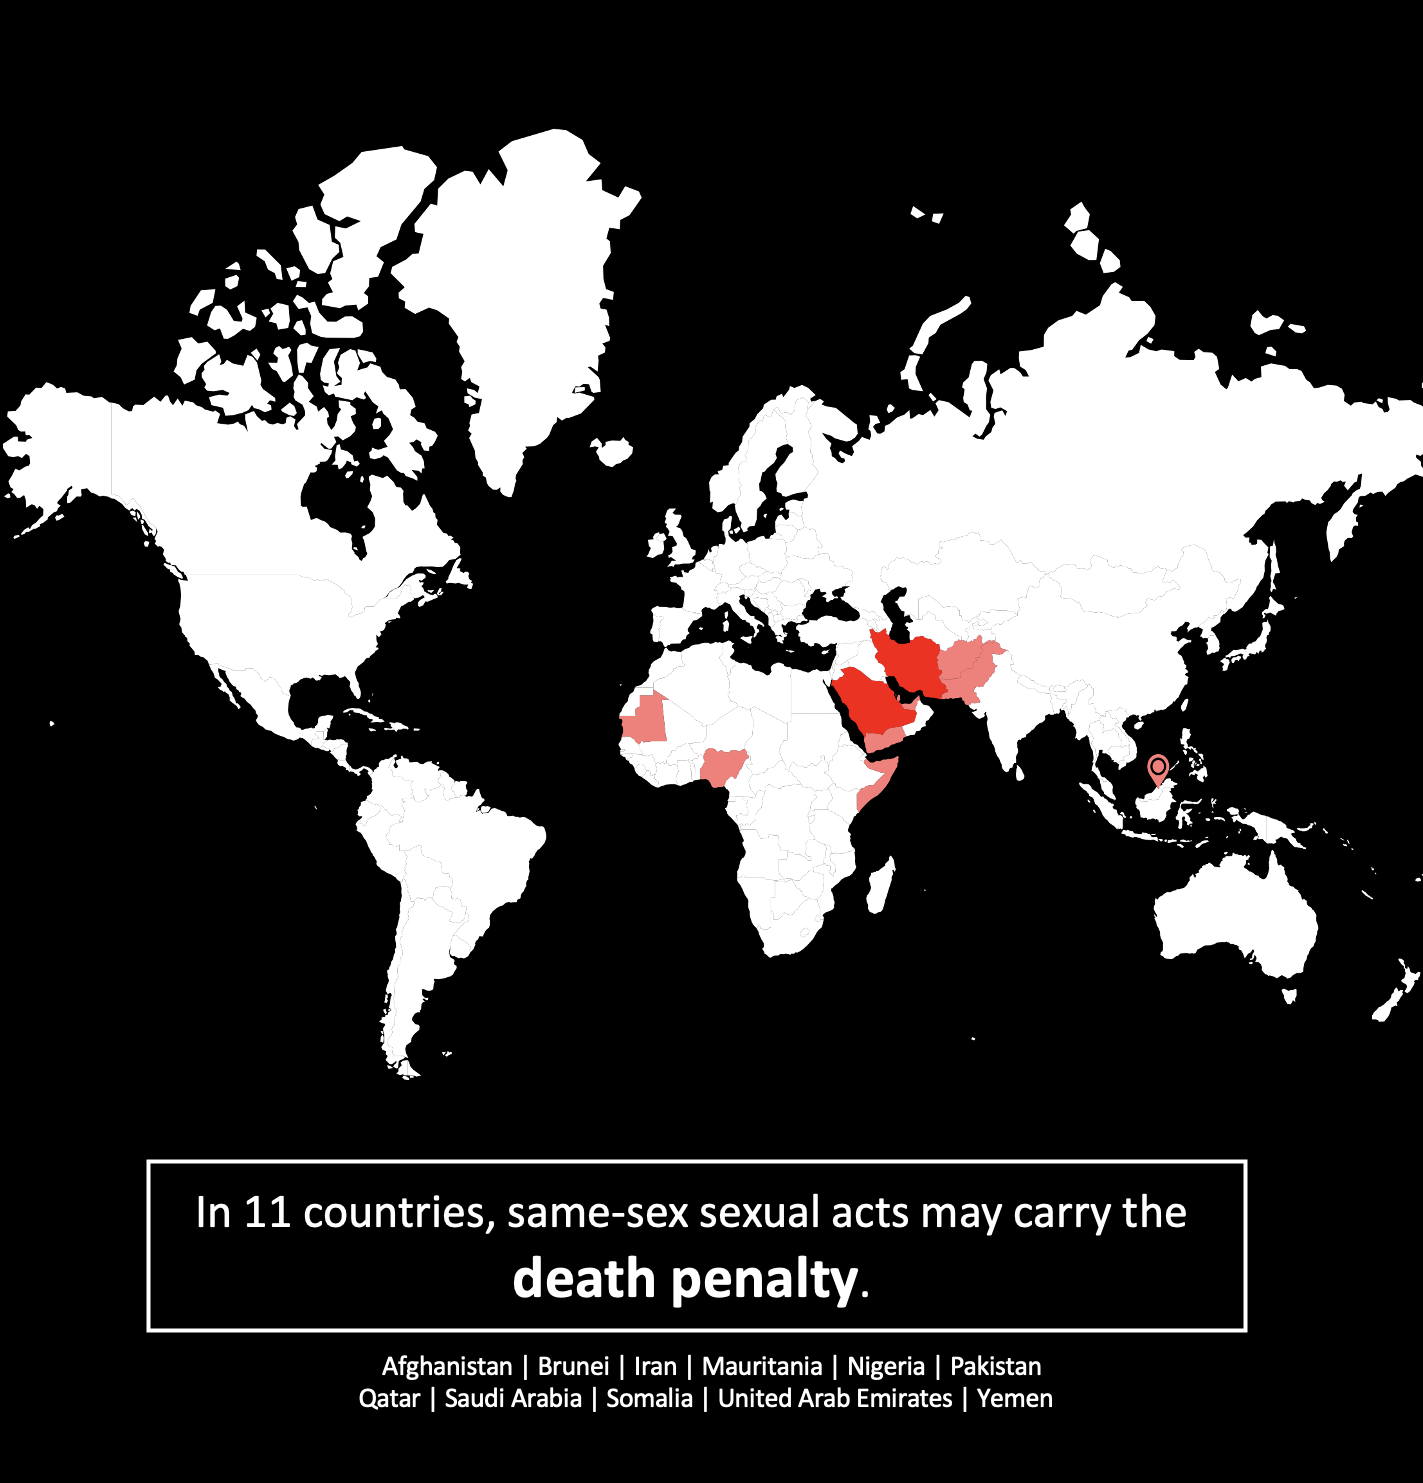 Map that says in 11 countries, same-sex sexual activity may carry the death penalty.